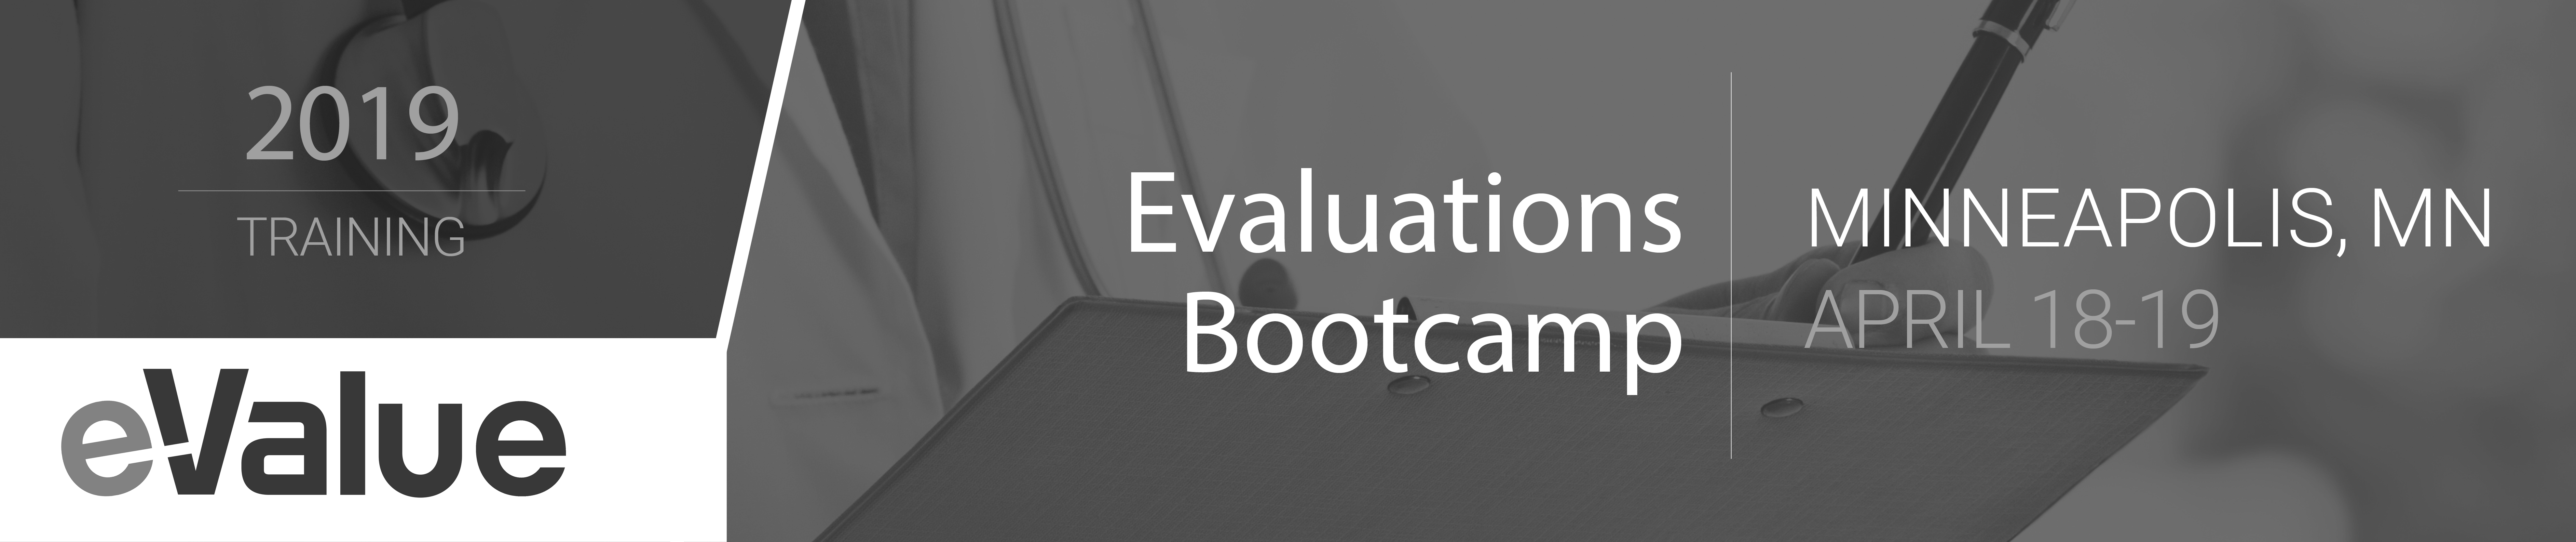 eValue Evaluations Bootcamp (April 18-19)